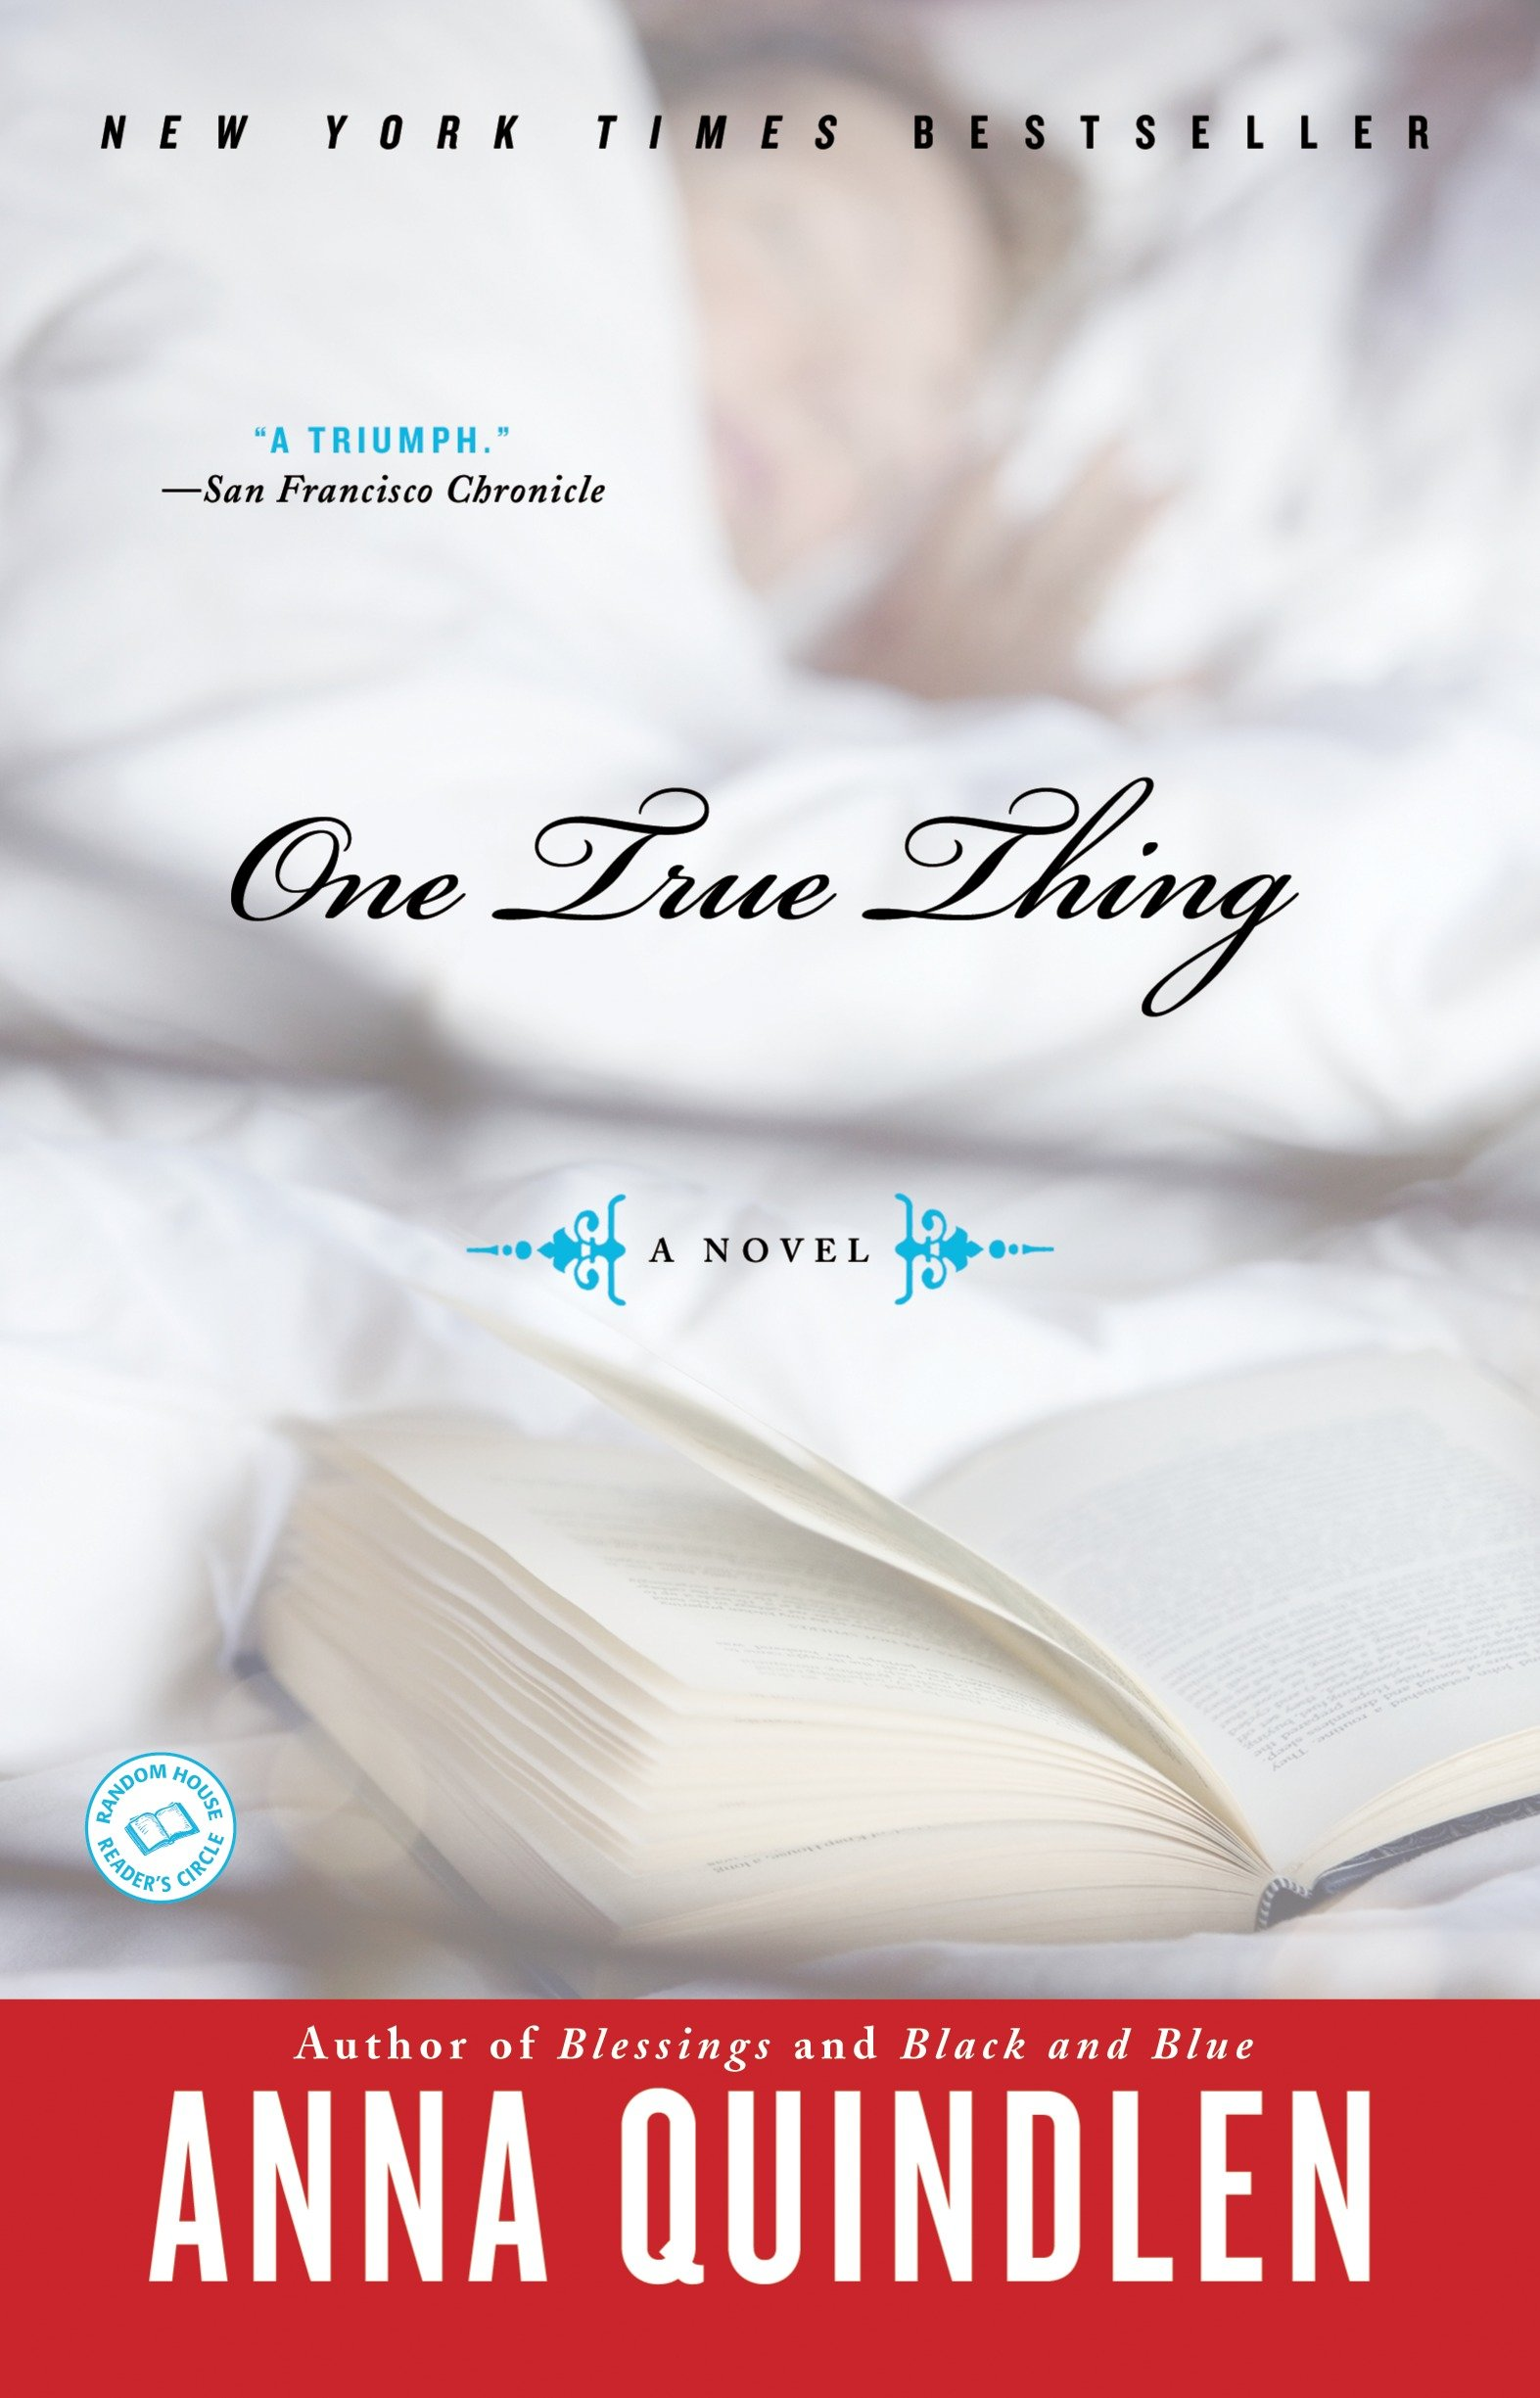 One true thing cover image